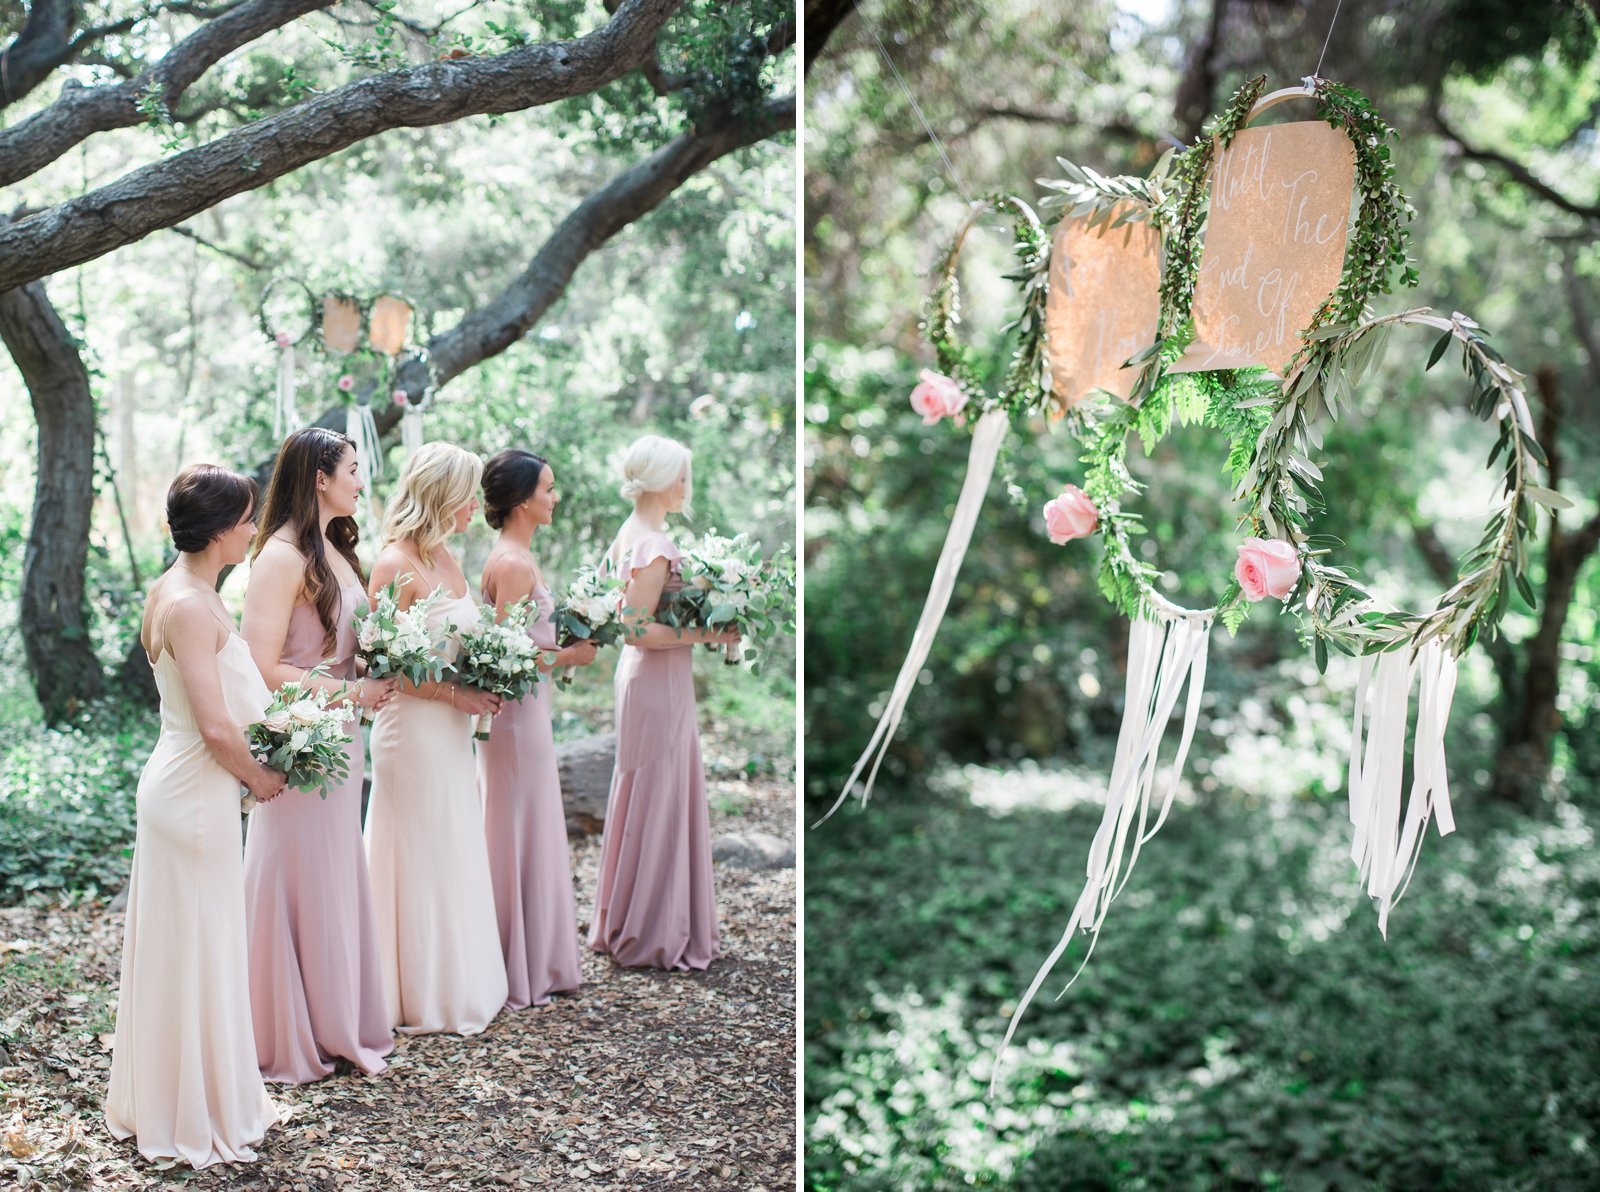 Gorgeous bridesmaids and dresses for this Santa Barbara museum of natural history wedding ceremony